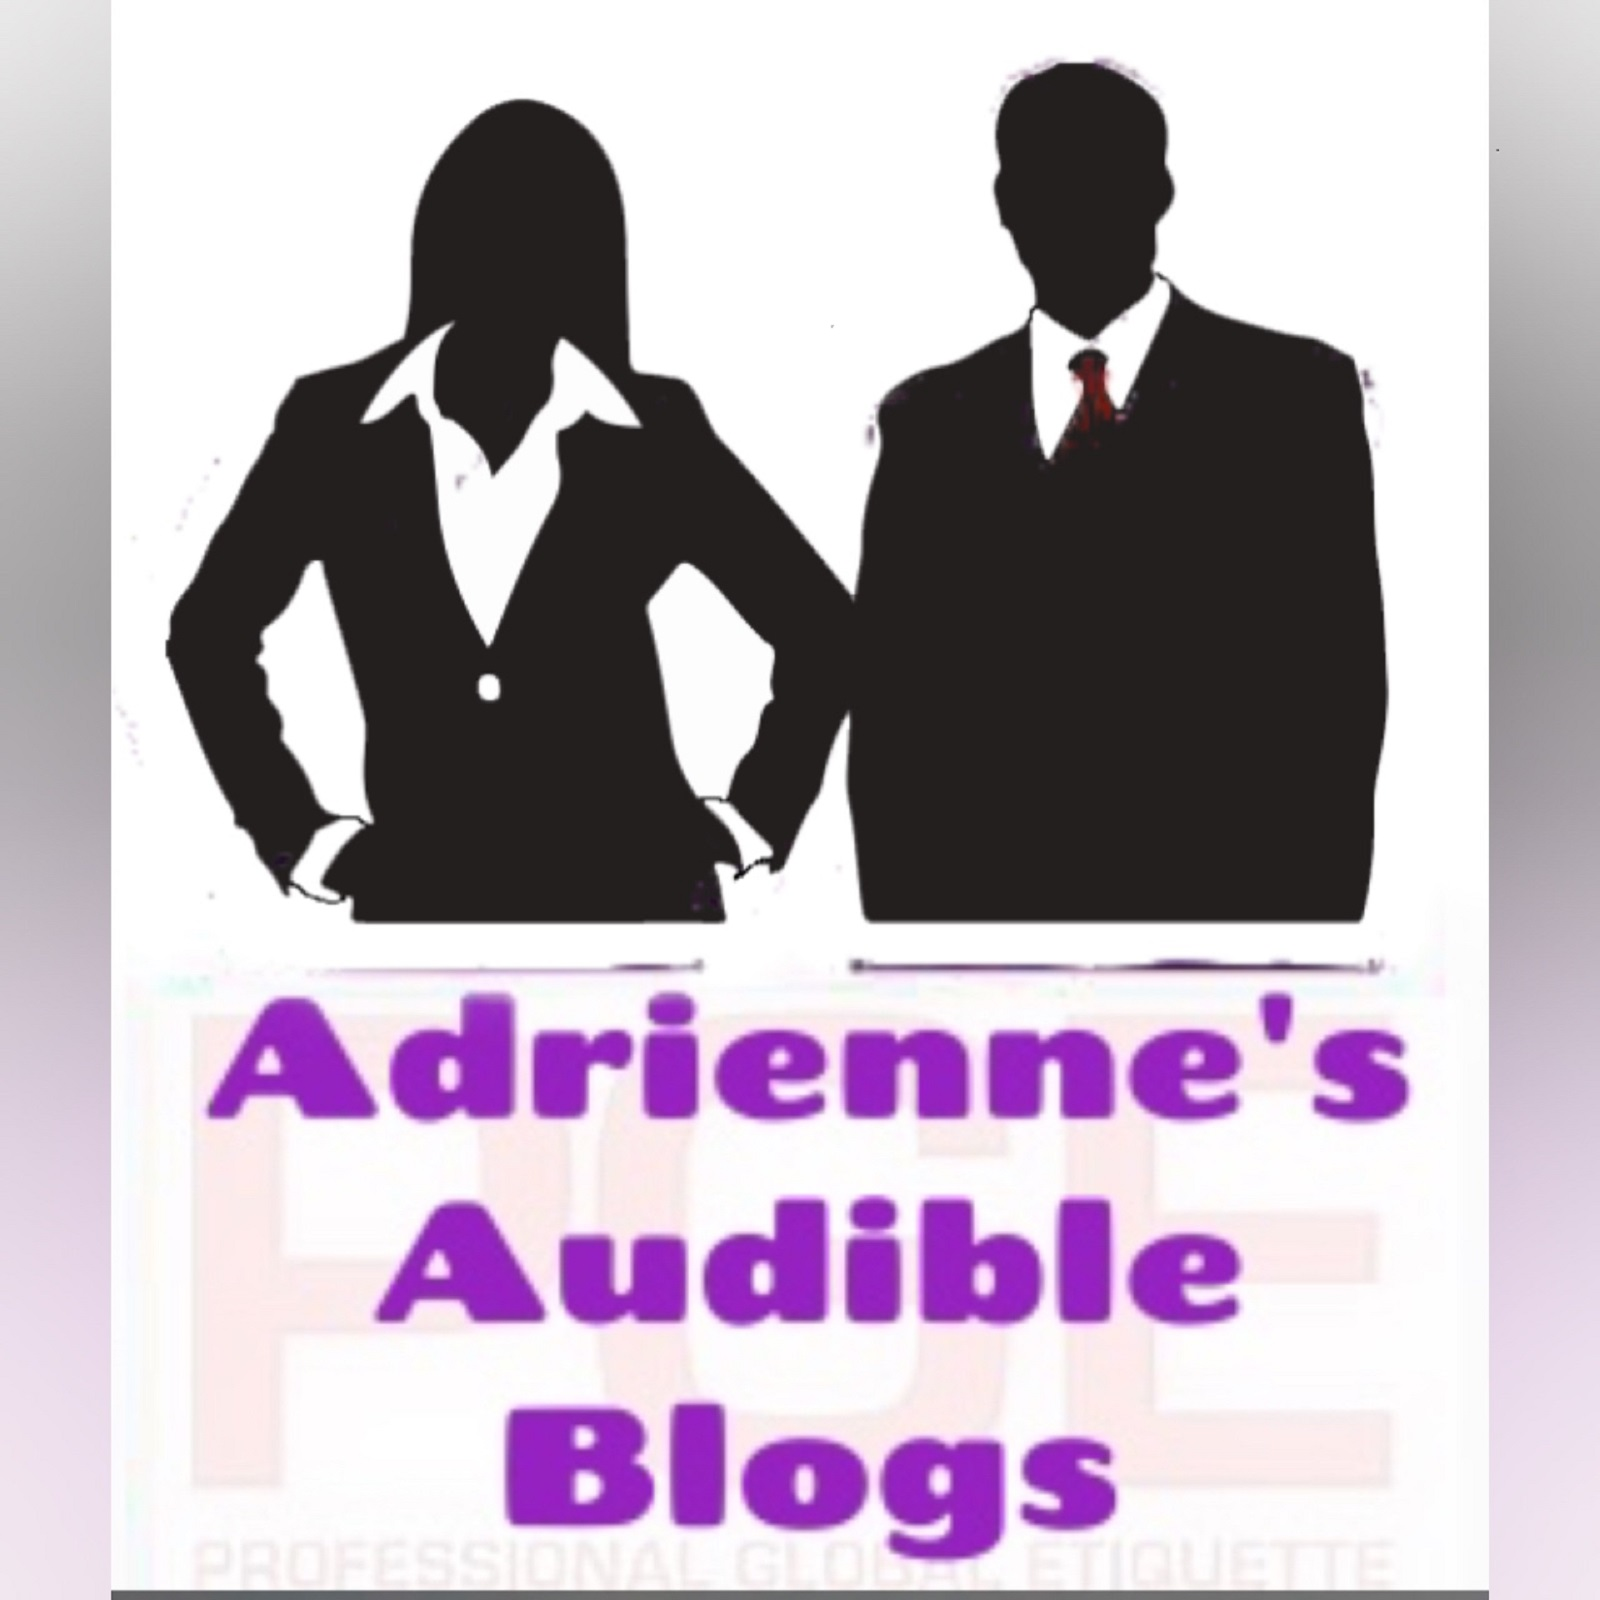 The Adrienne's Audible Blog's Podcast